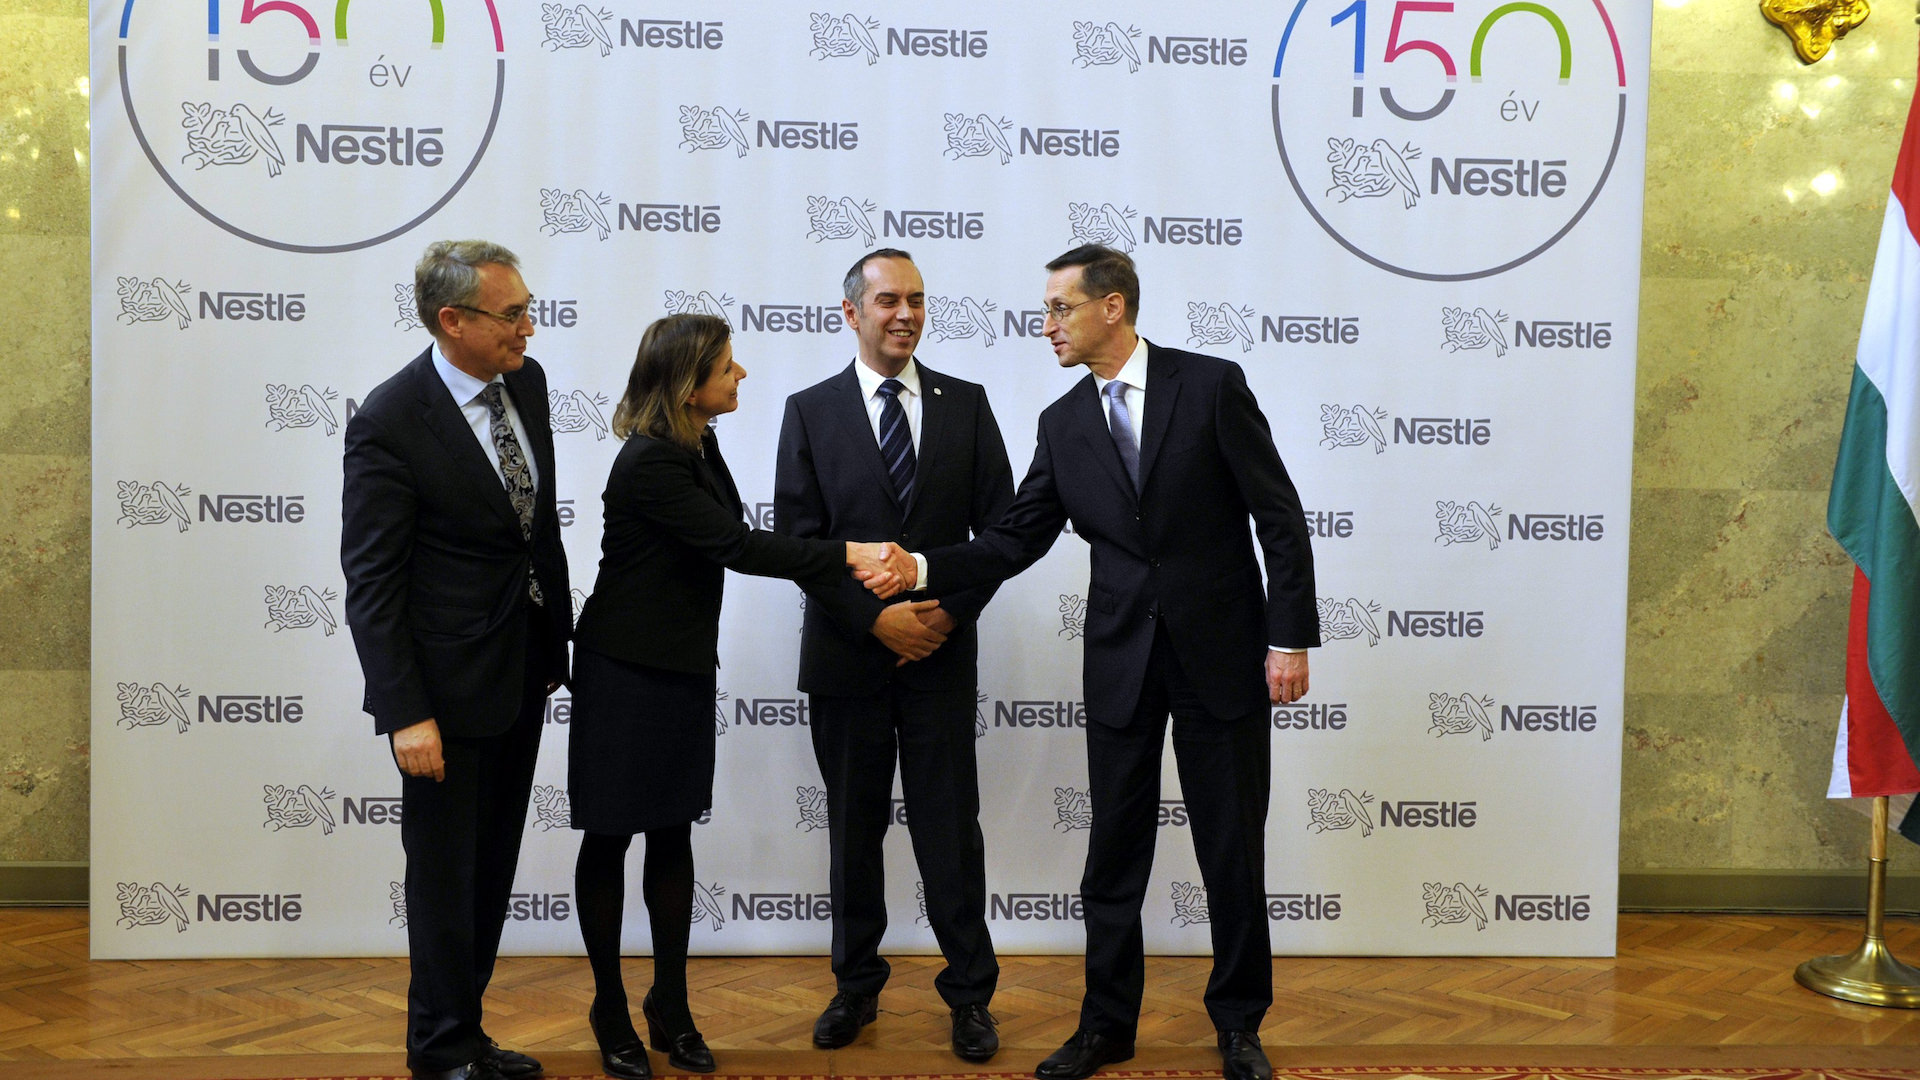 Record-level expansion in the Bük plant of Nestlé